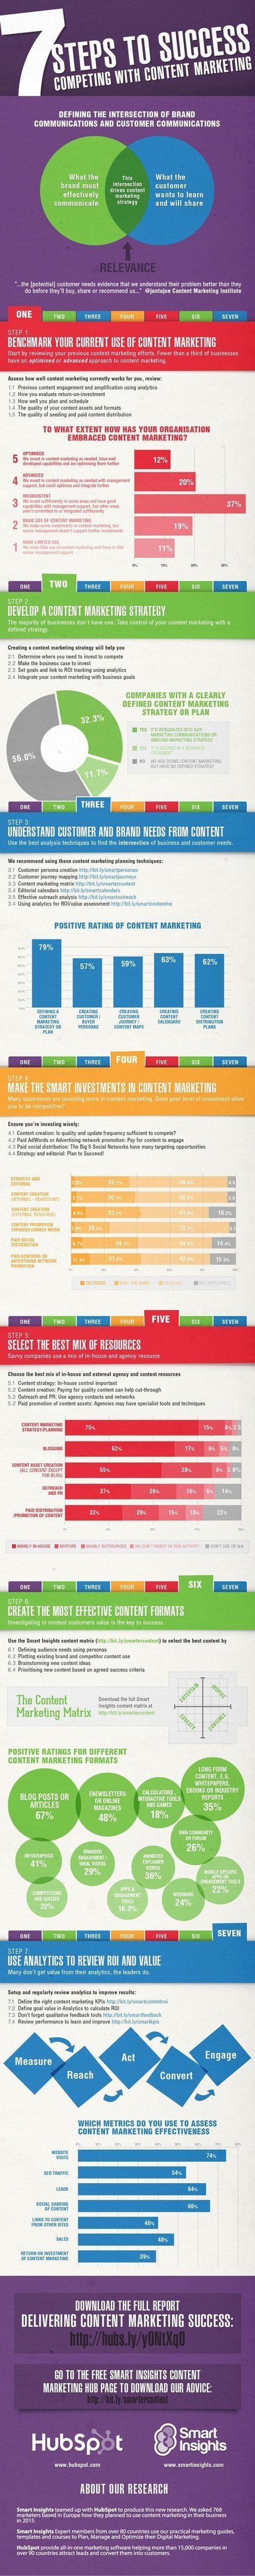 7 Steps To Content Marketing Sucess - A Survey Infographic | Advanced SEO | Social Media Tips | Scoop.it